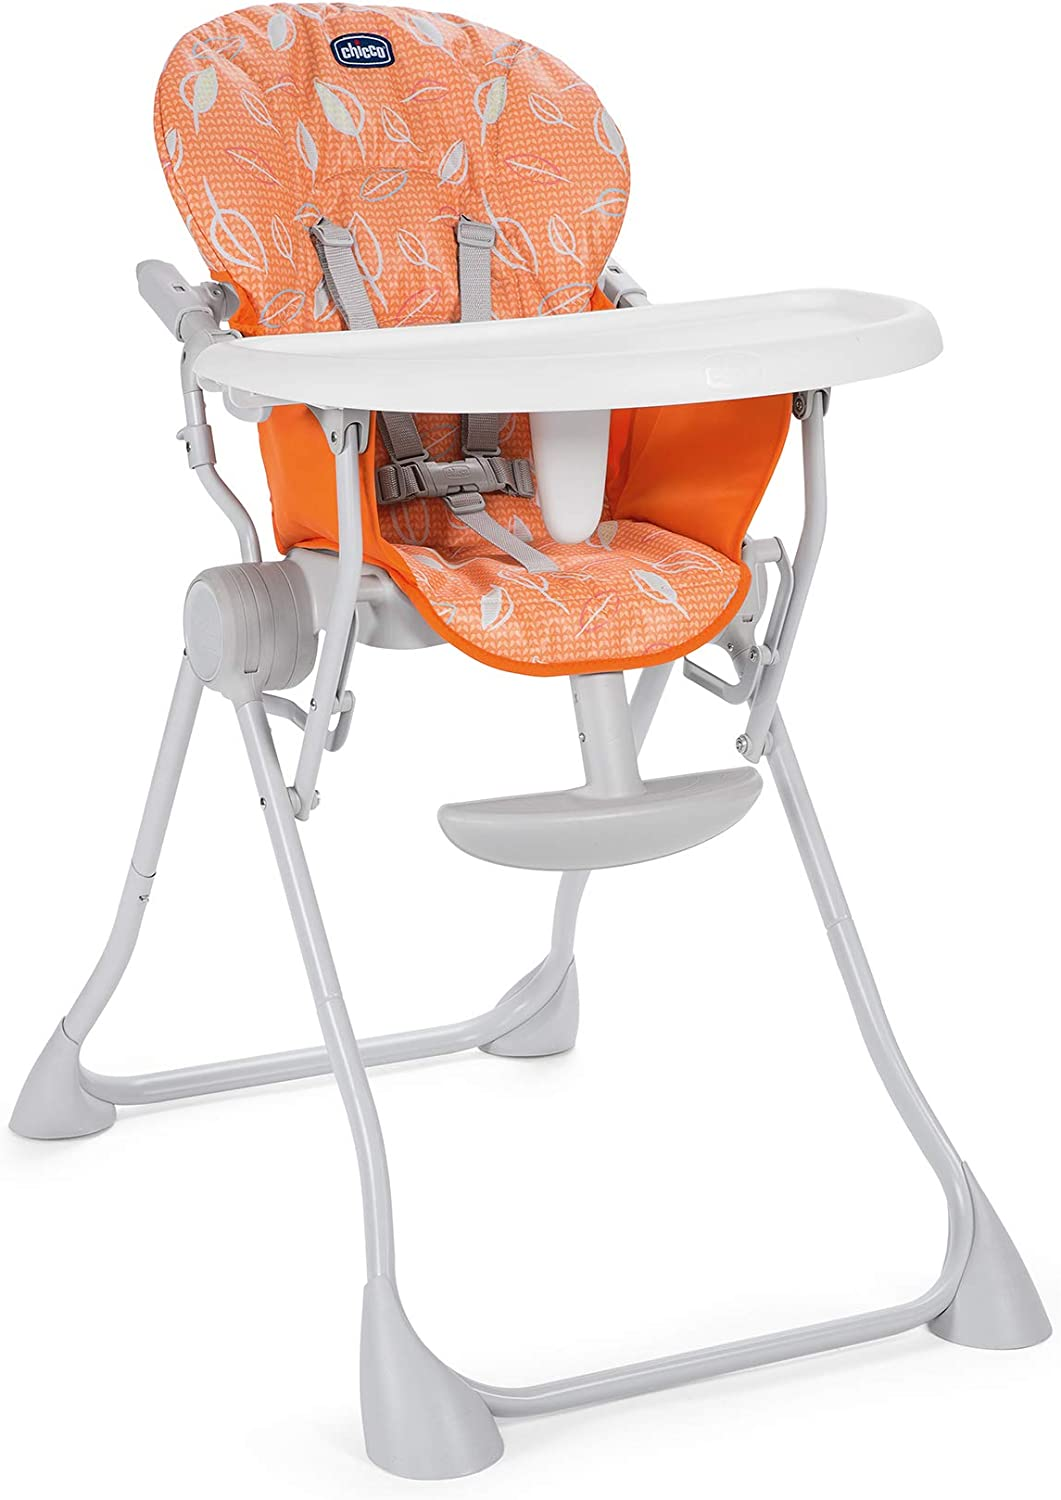 Chicco Chaise Haute Bébé Pocket Meal Happy Orange Ultra Compacte